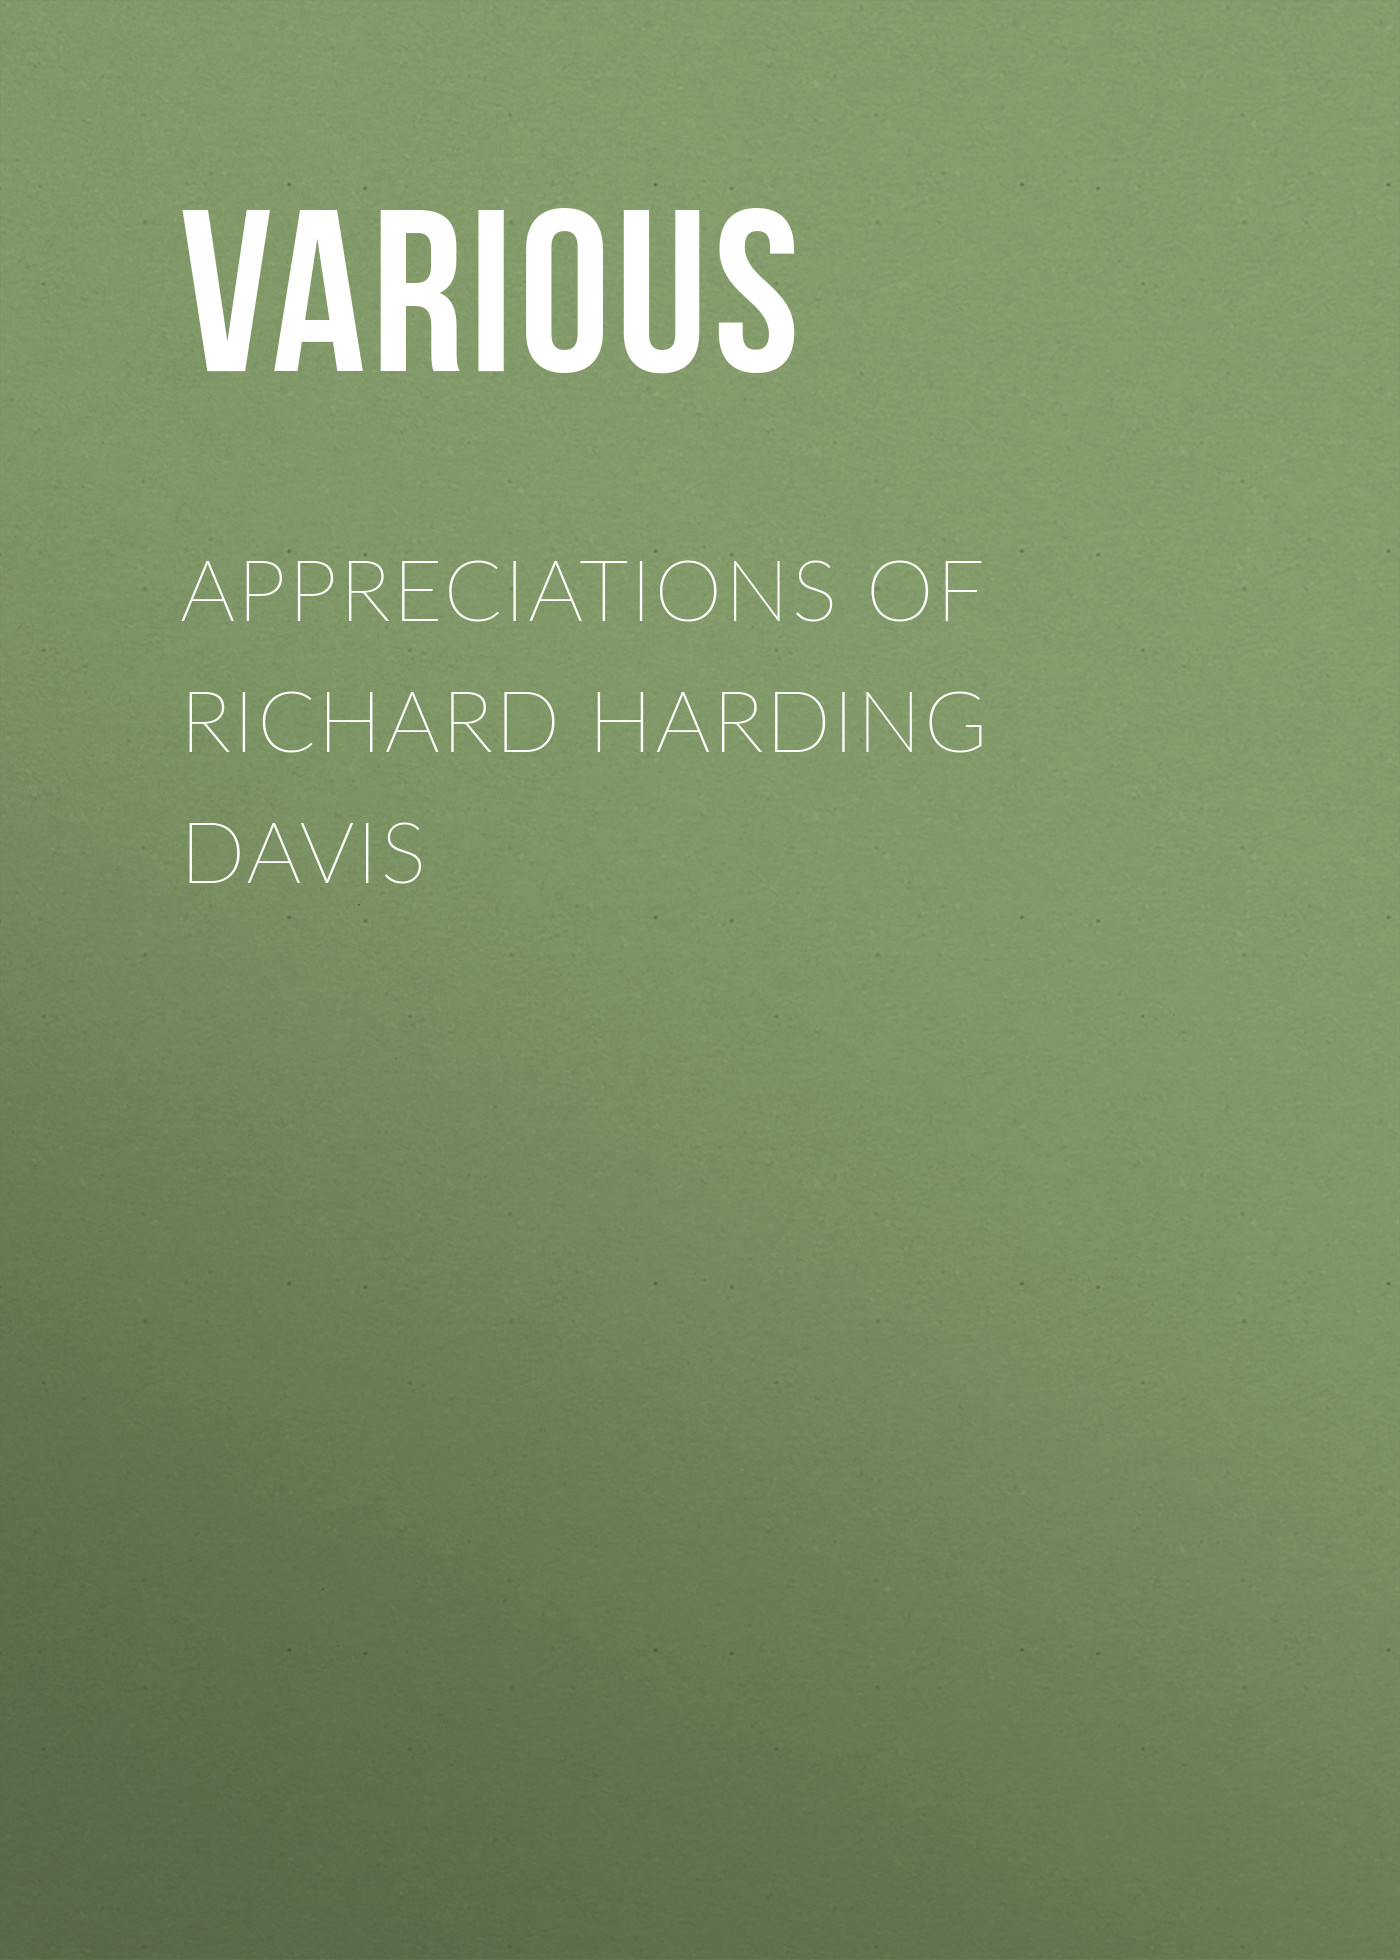 лучшая цена Various Appreciations of Richard Harding Davis